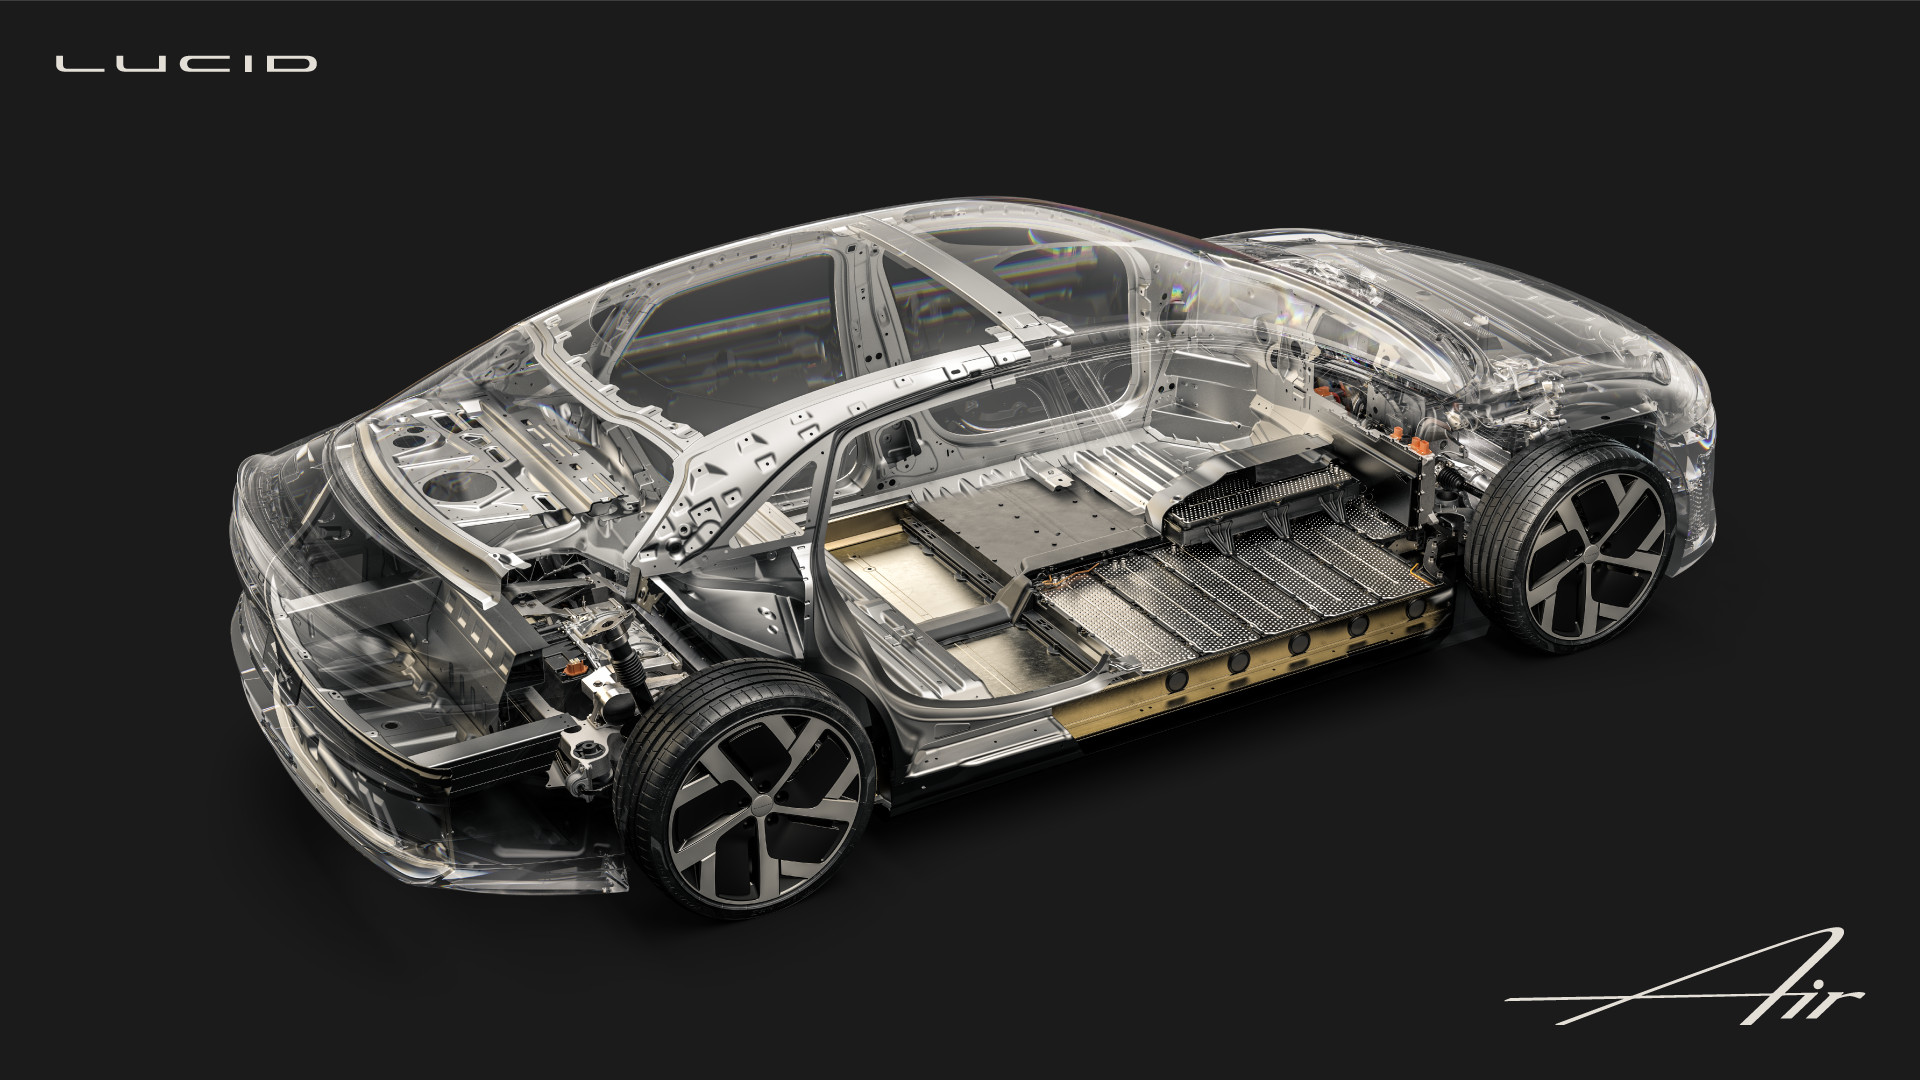 lucid-air-body-structure-and-battery-pack_100758042_h